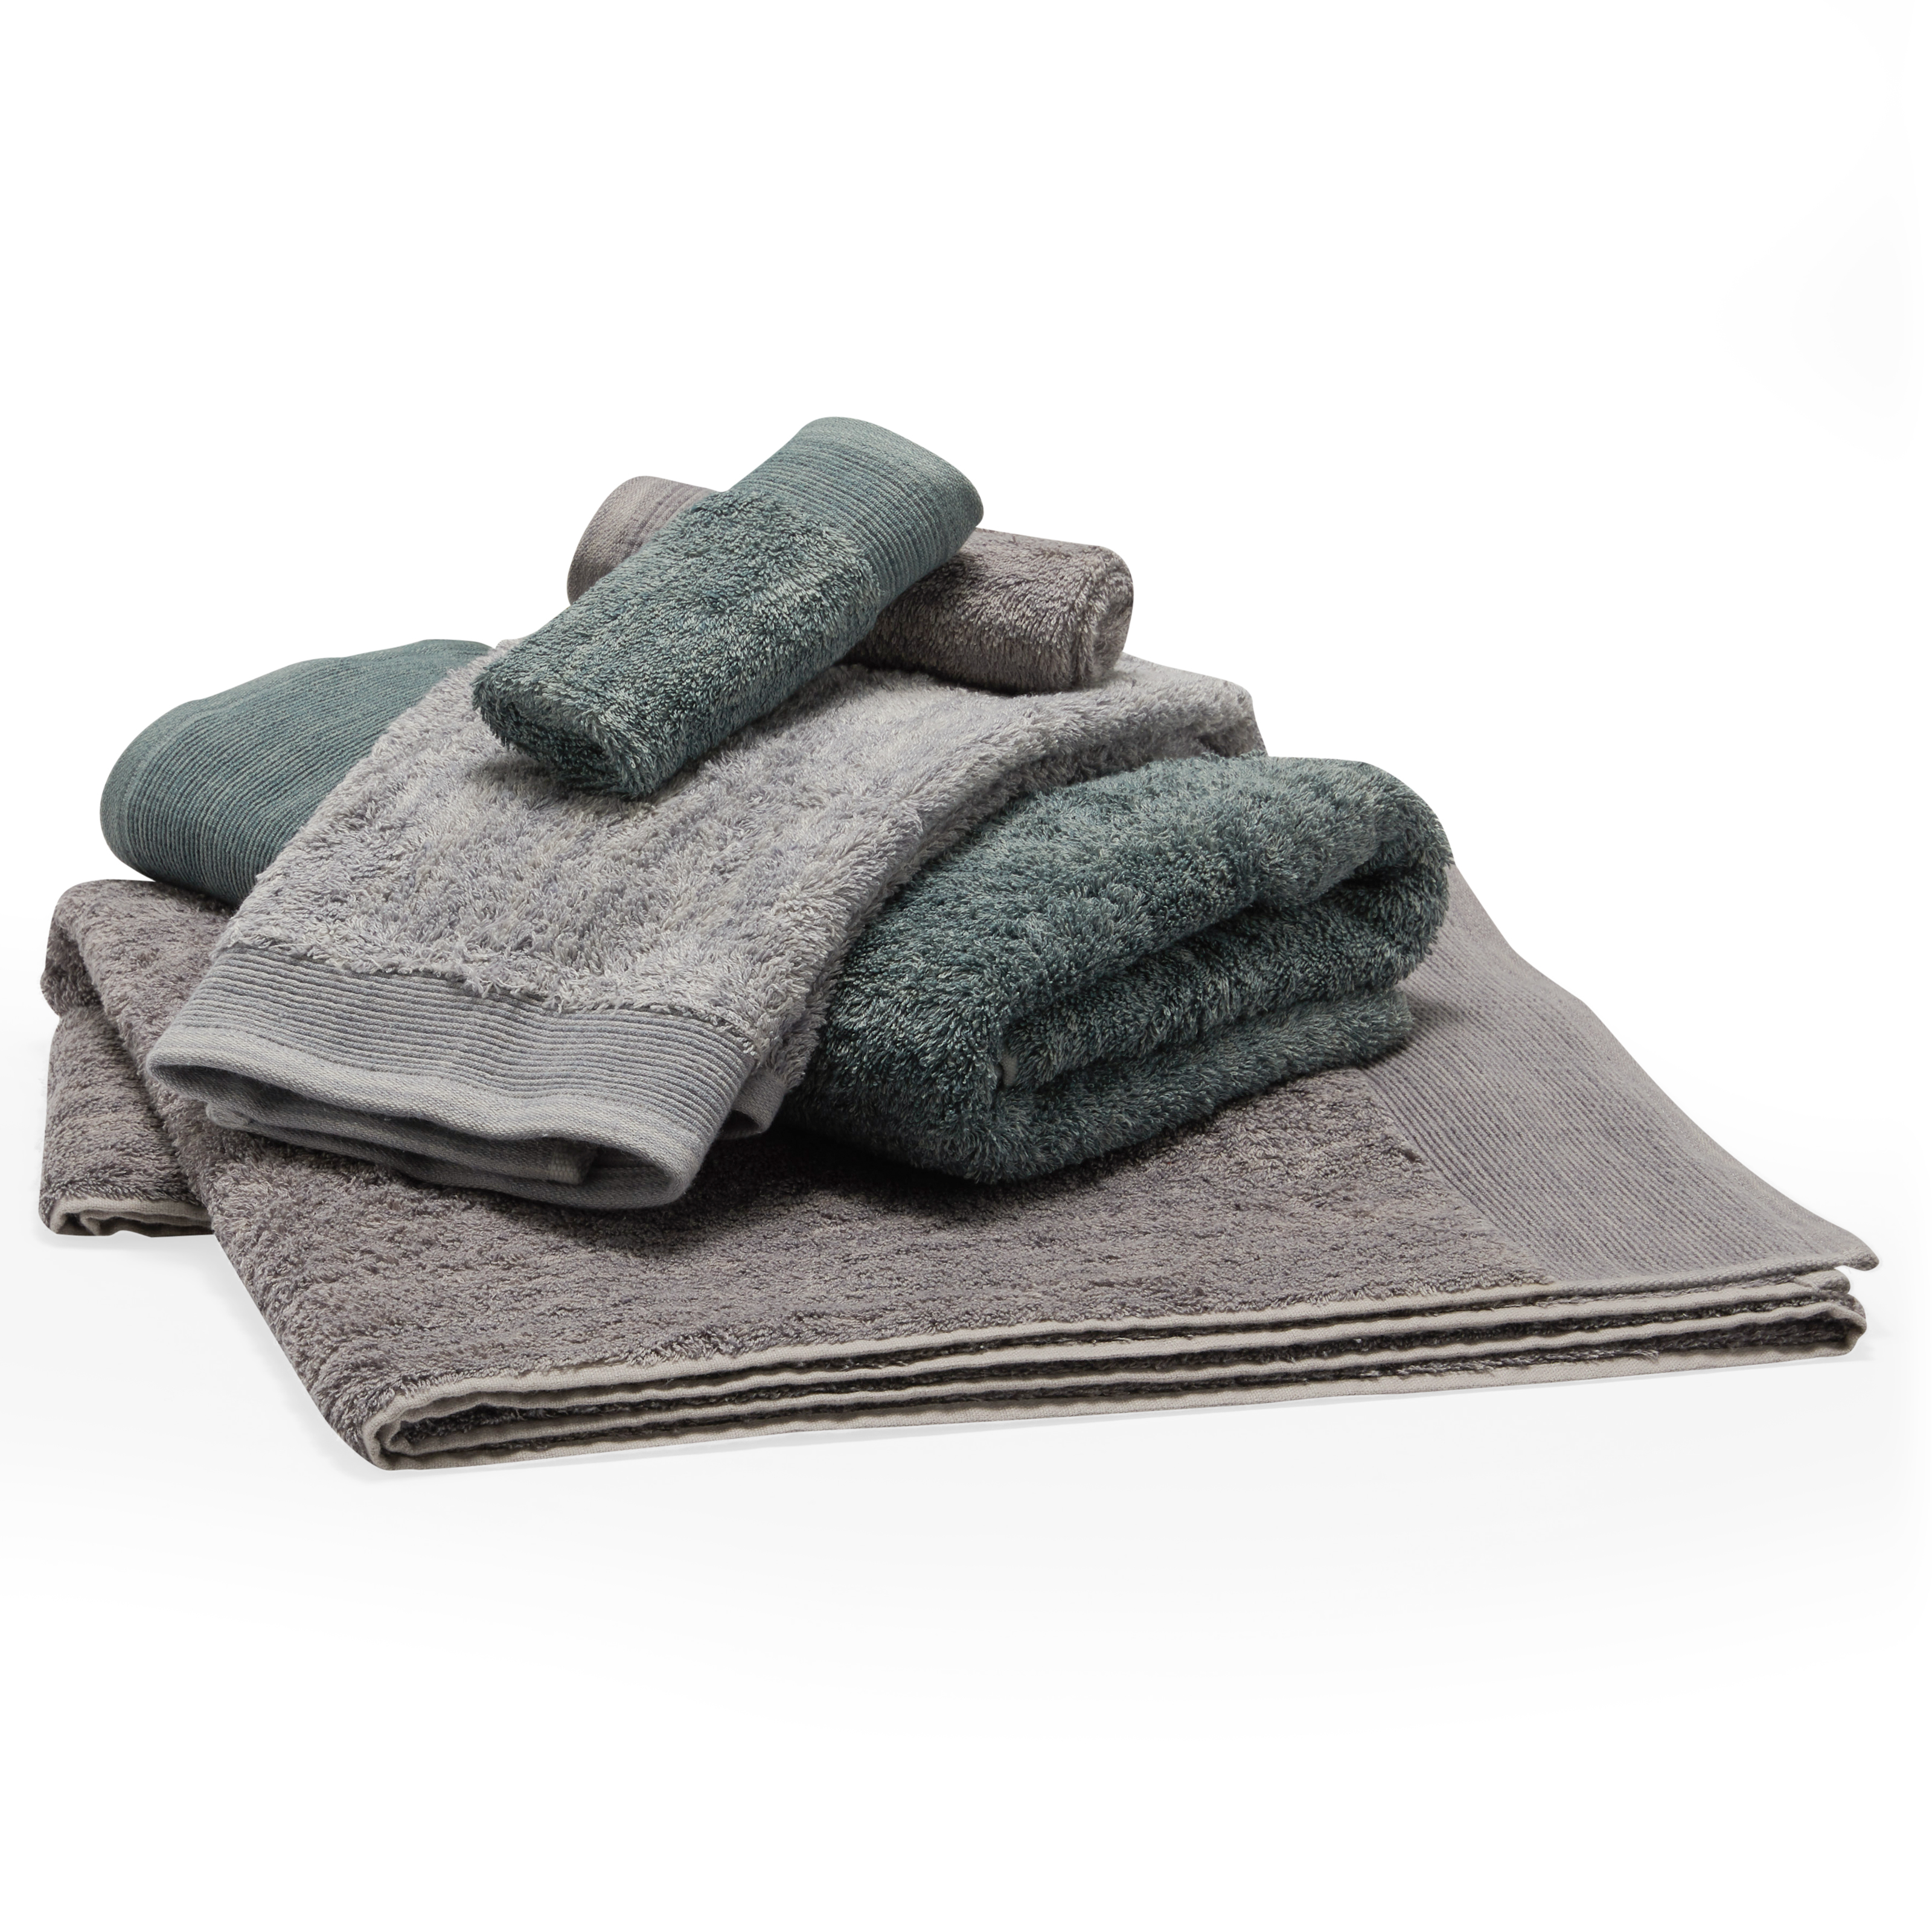 MoDRN Gradient Towel Set